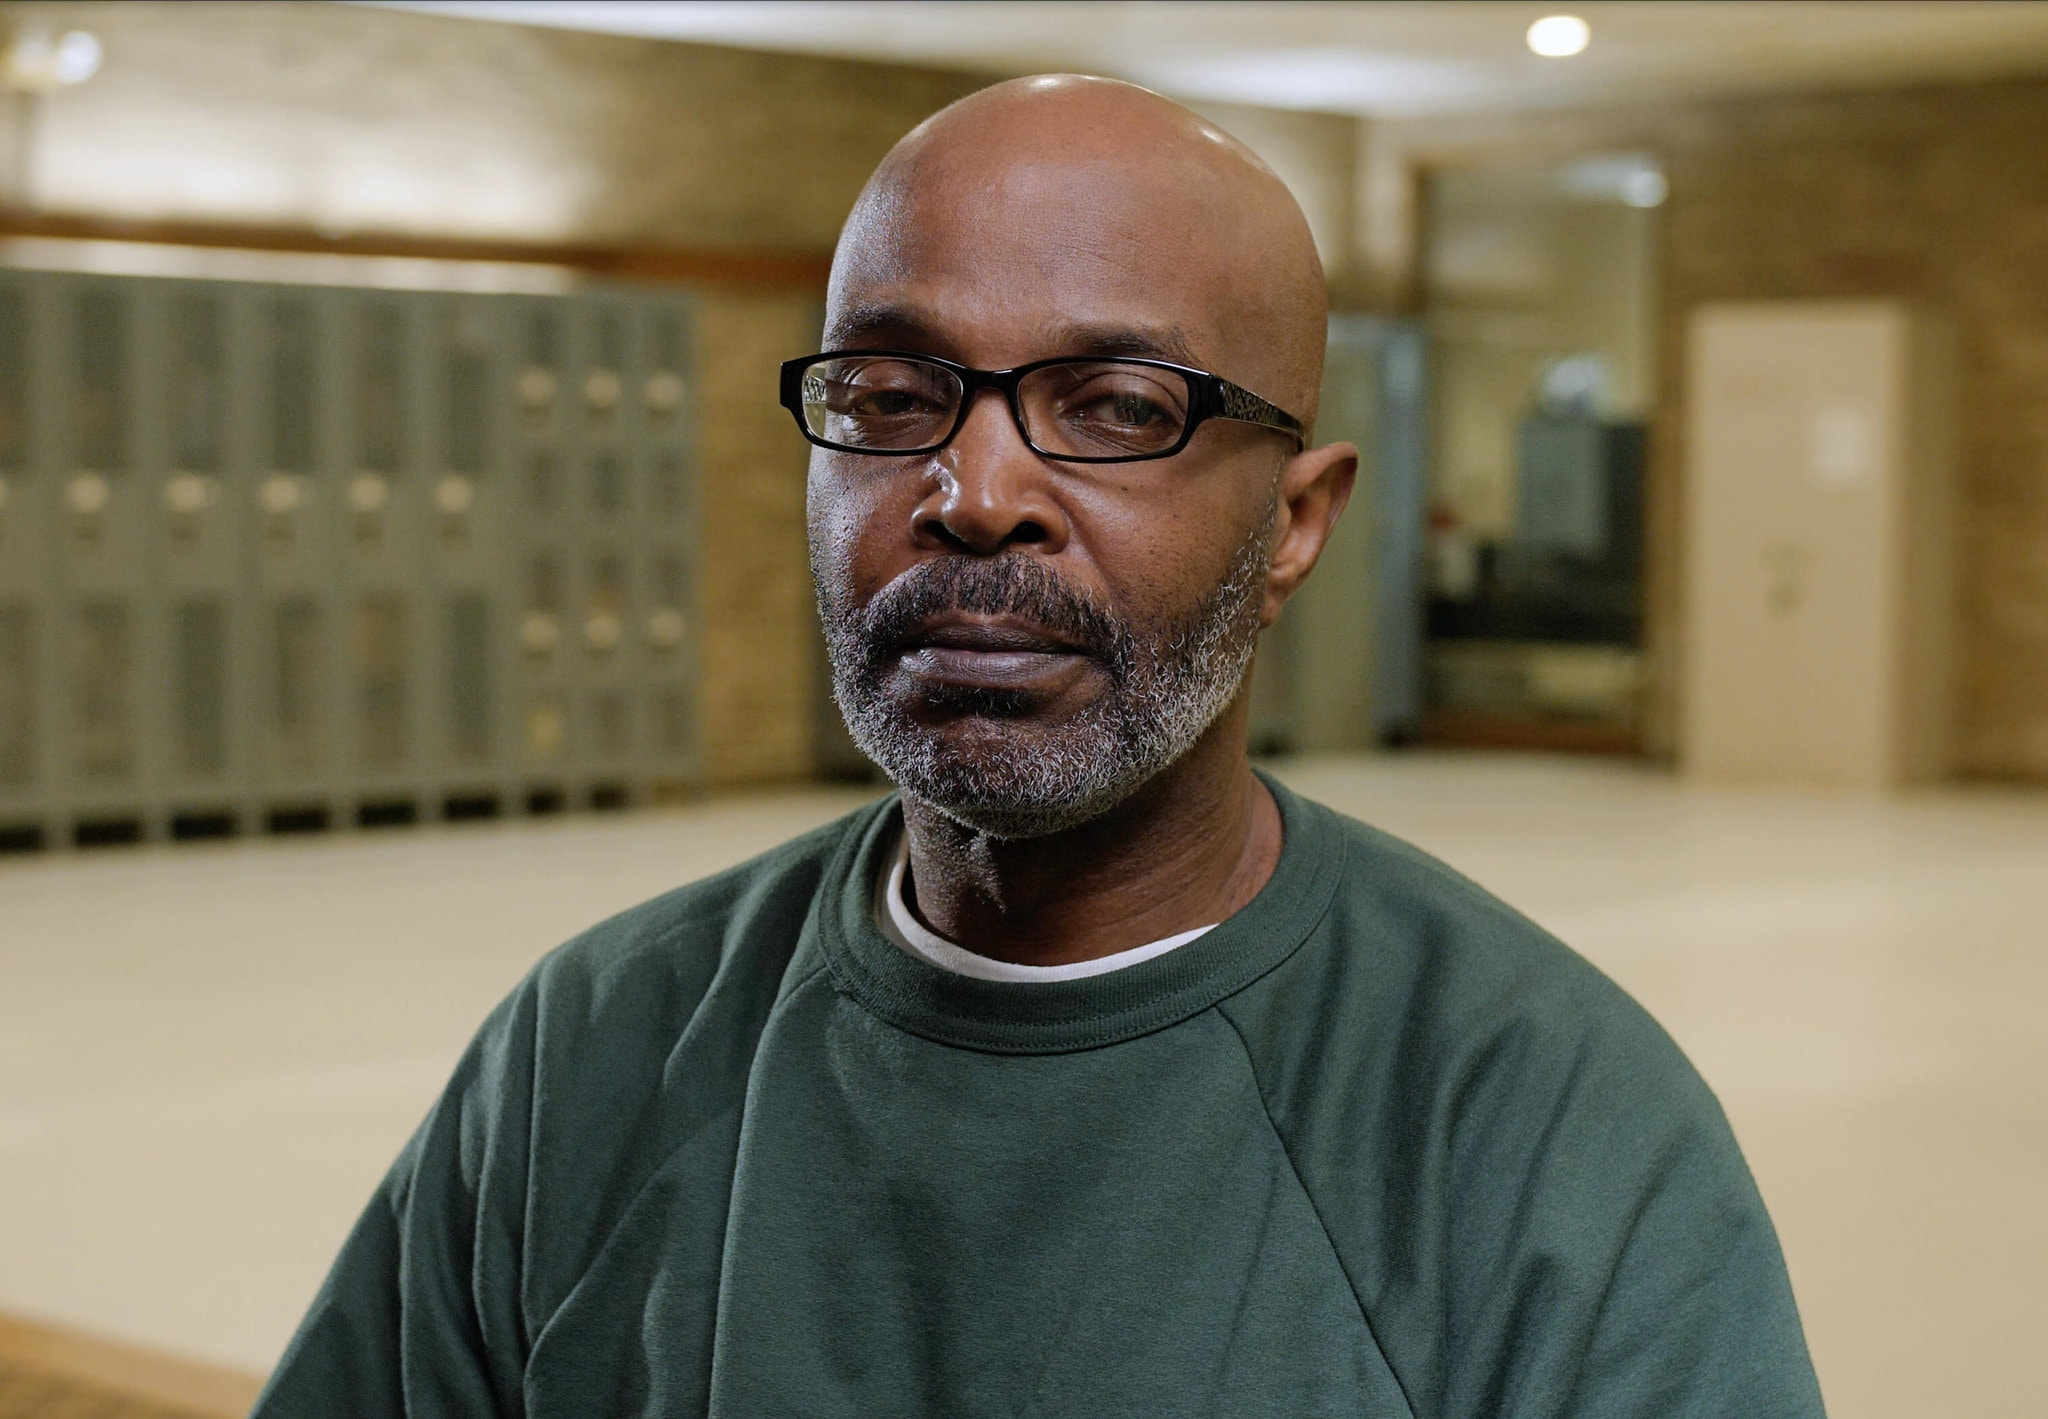 Mark Thompson, 62, has served 38 years at the Auburn Correctional Facility. Credit: Peter Carroll